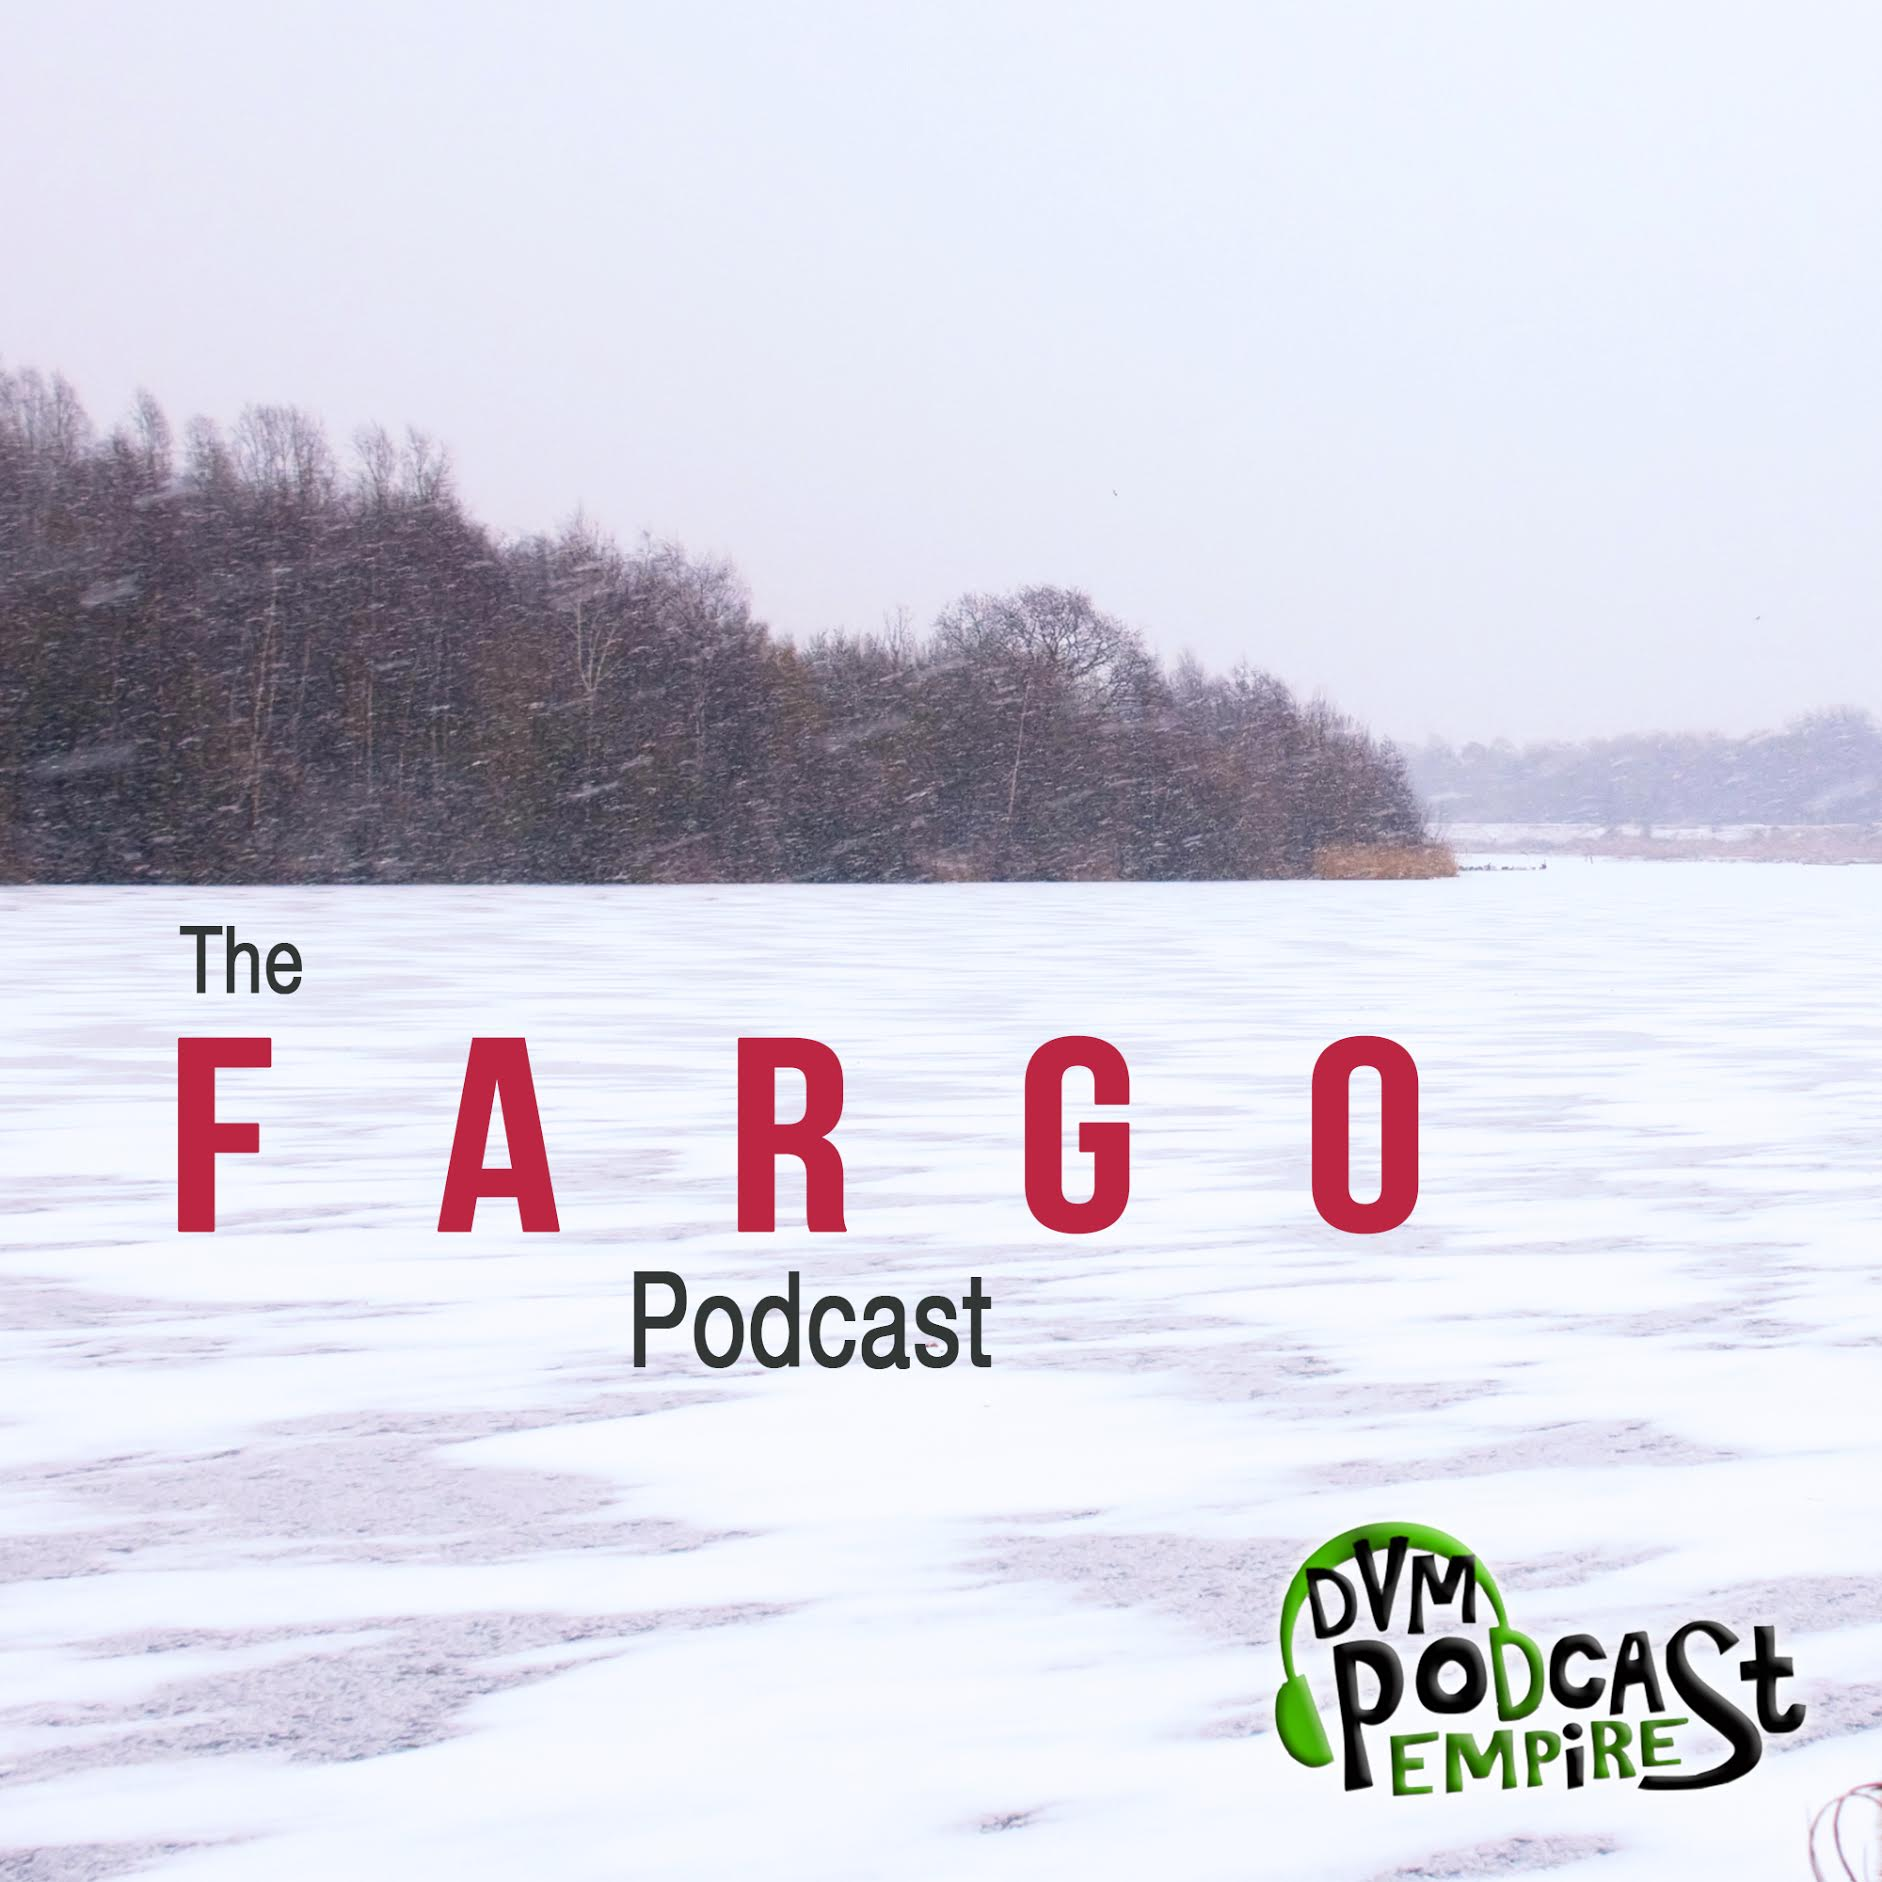 The Fargo Podcast